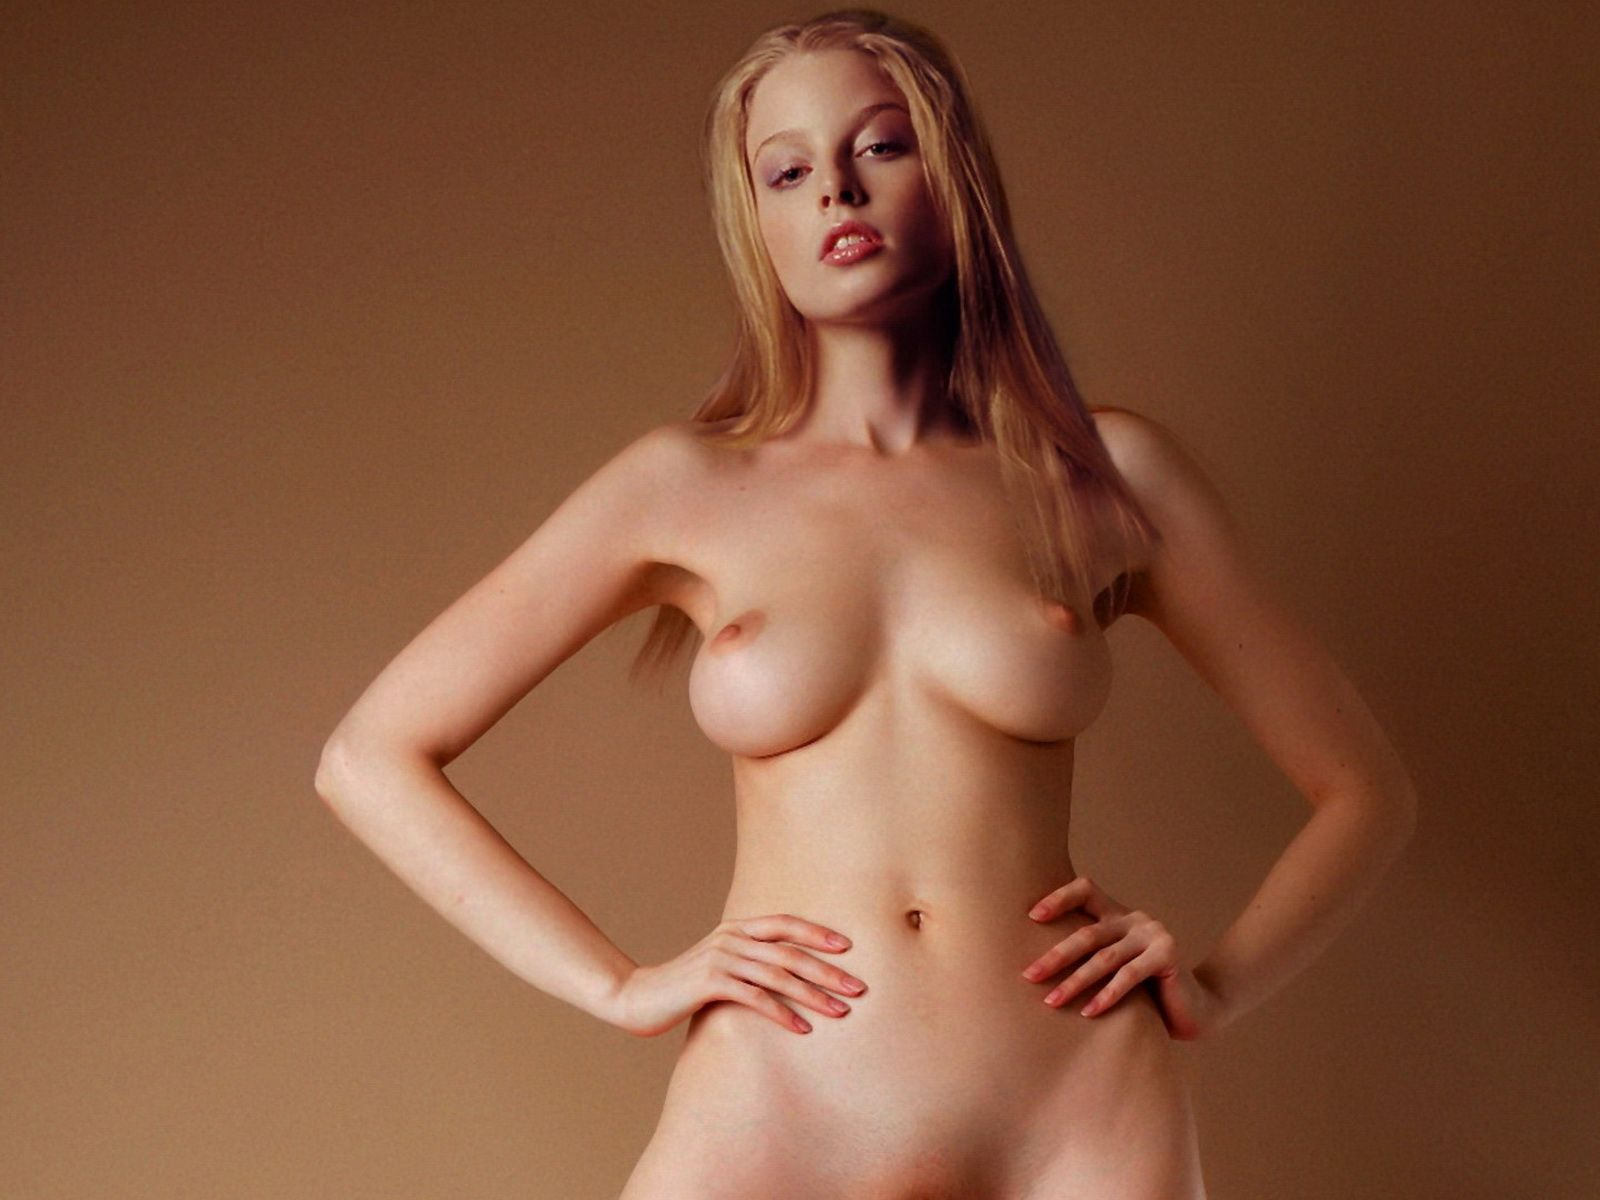 Small nude images